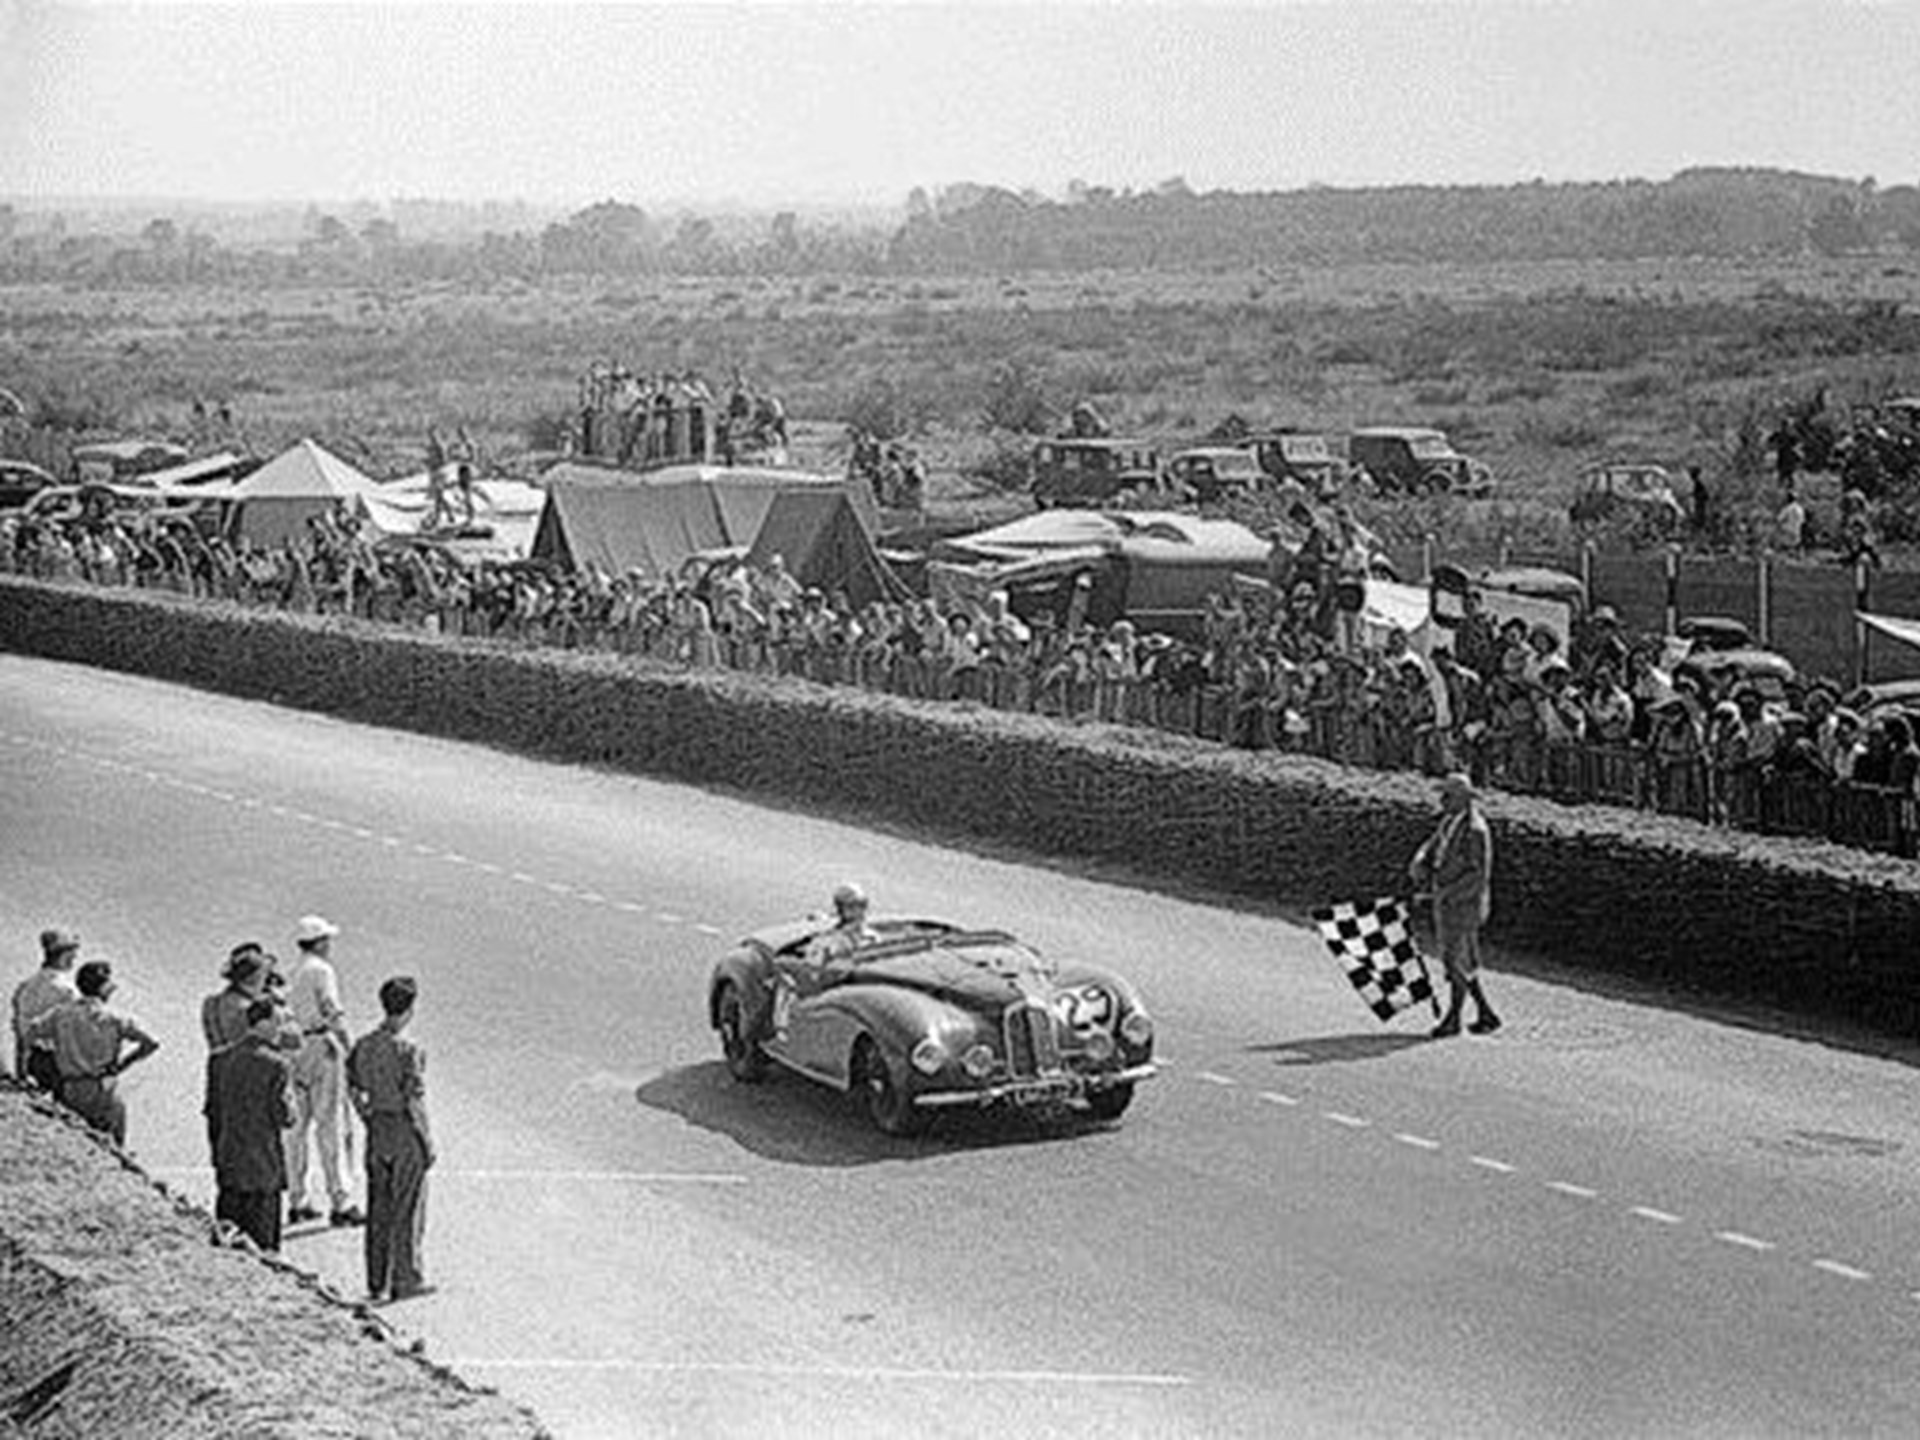 Robert Lowrie crosses the finish line in 10th place at the 1949 Le Mans.